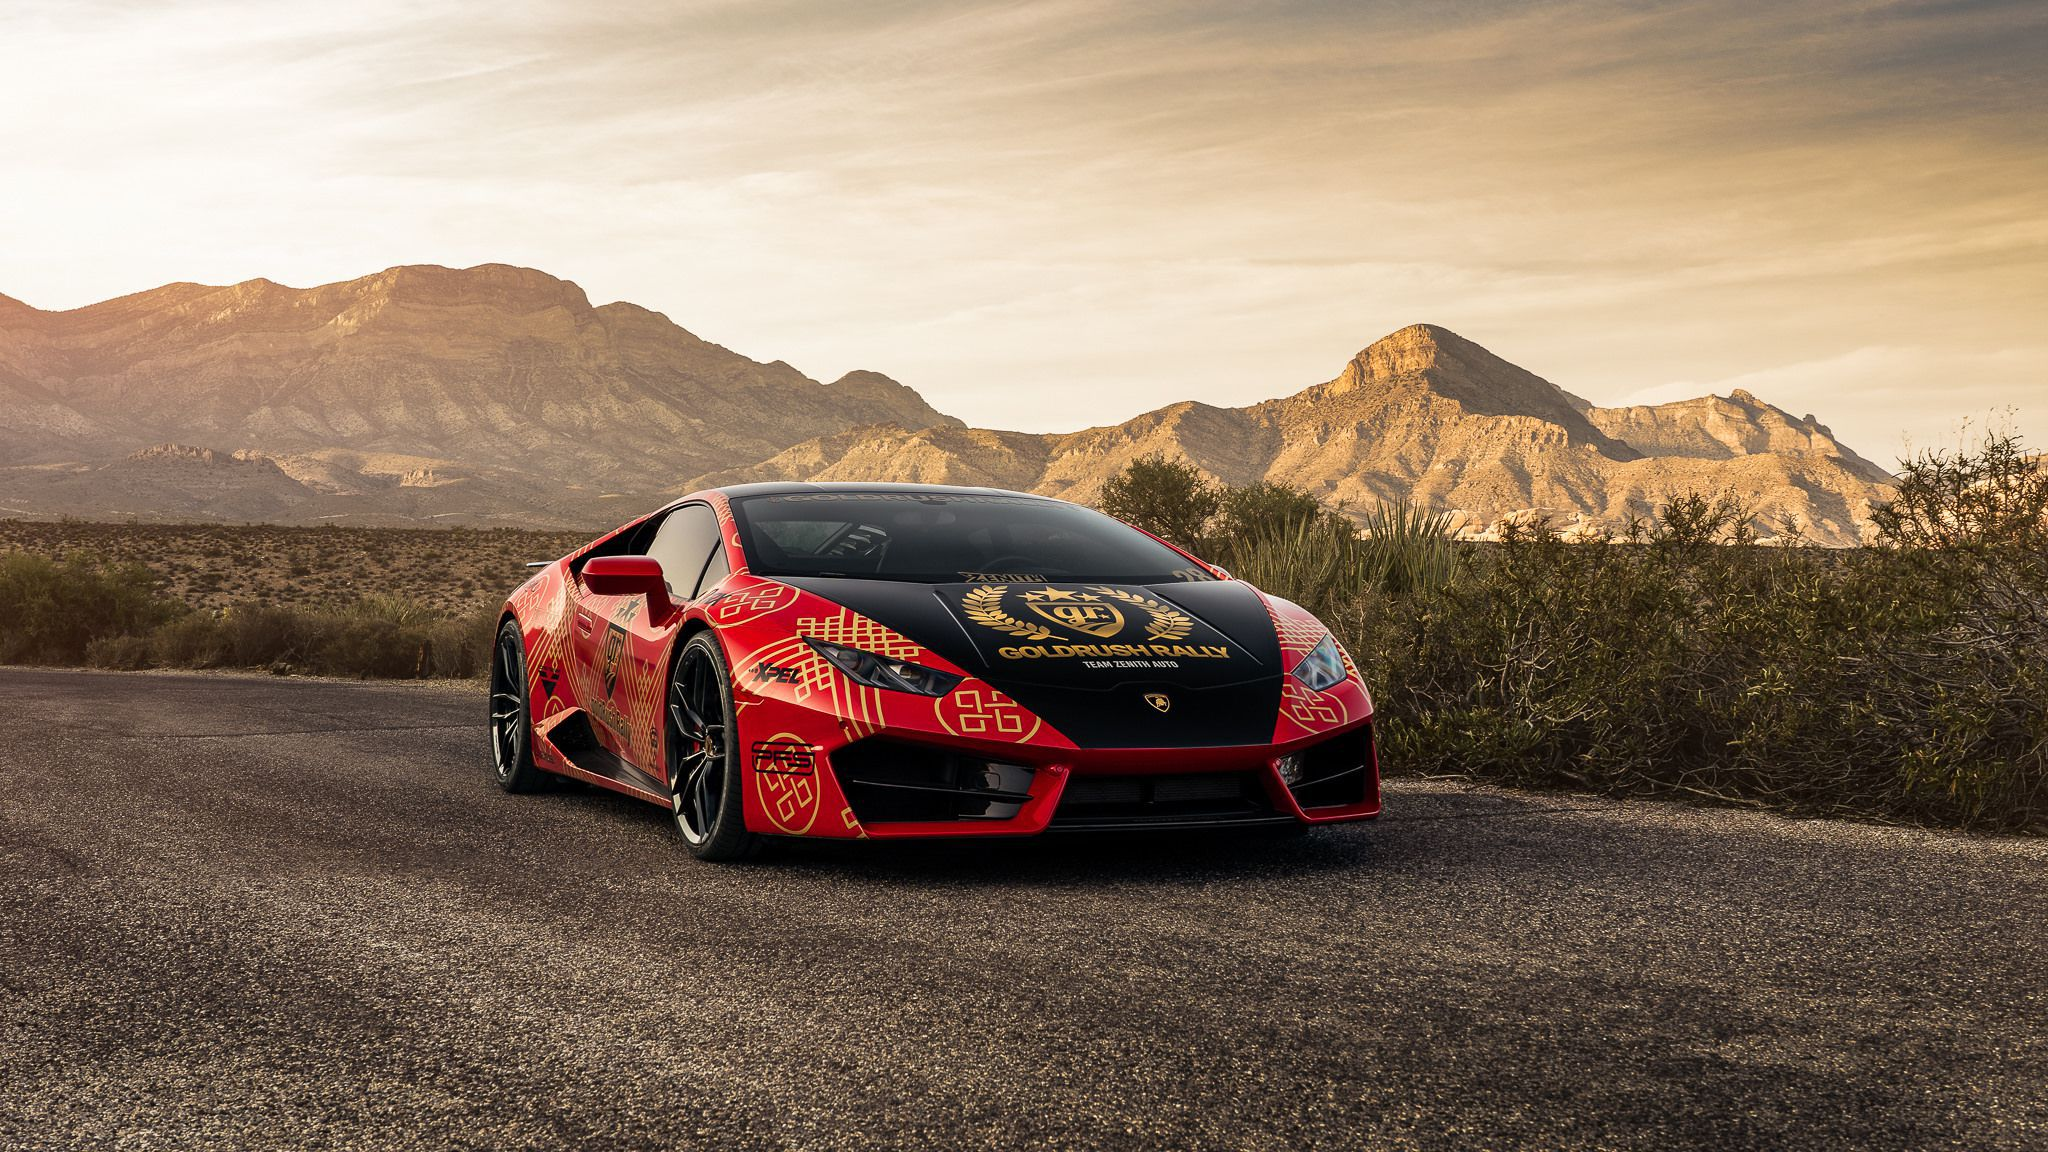 Goldrush Rally - 2018 red Lamborghini Huracan LP 610-4 HD image